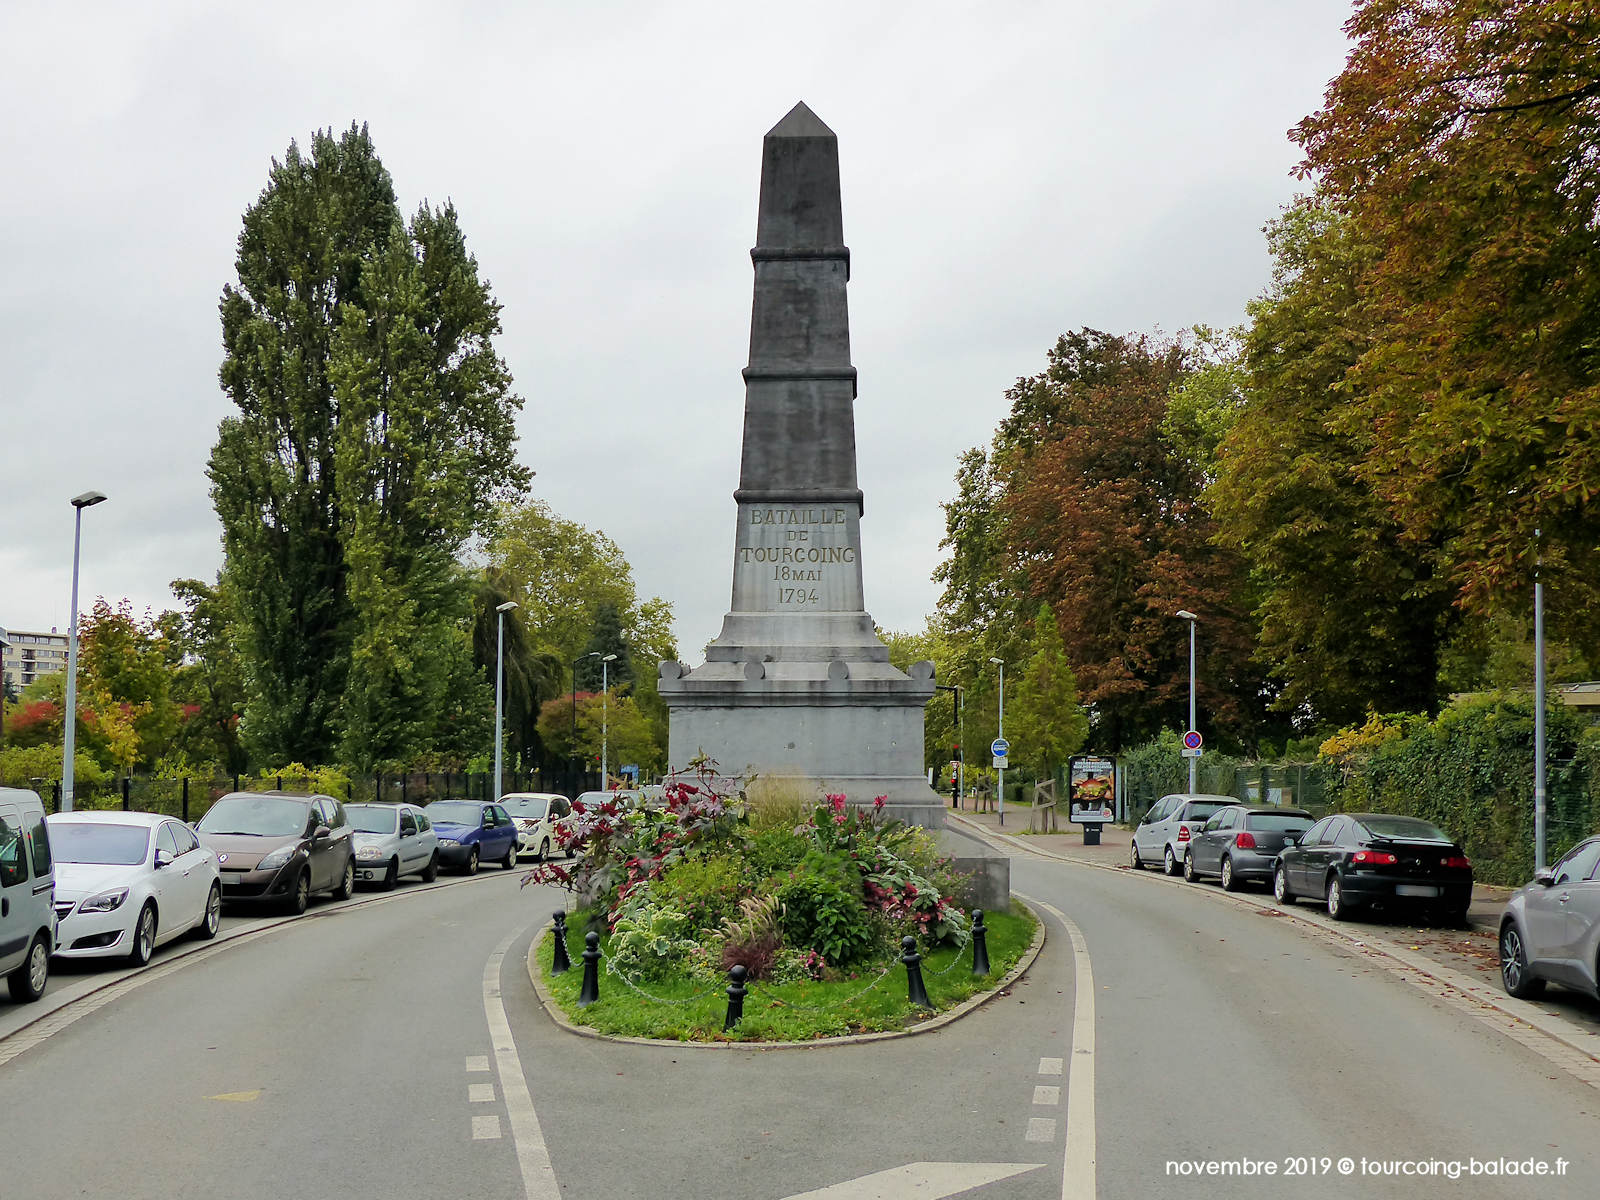 Monument Bataille Tourcoing 1794, 2019